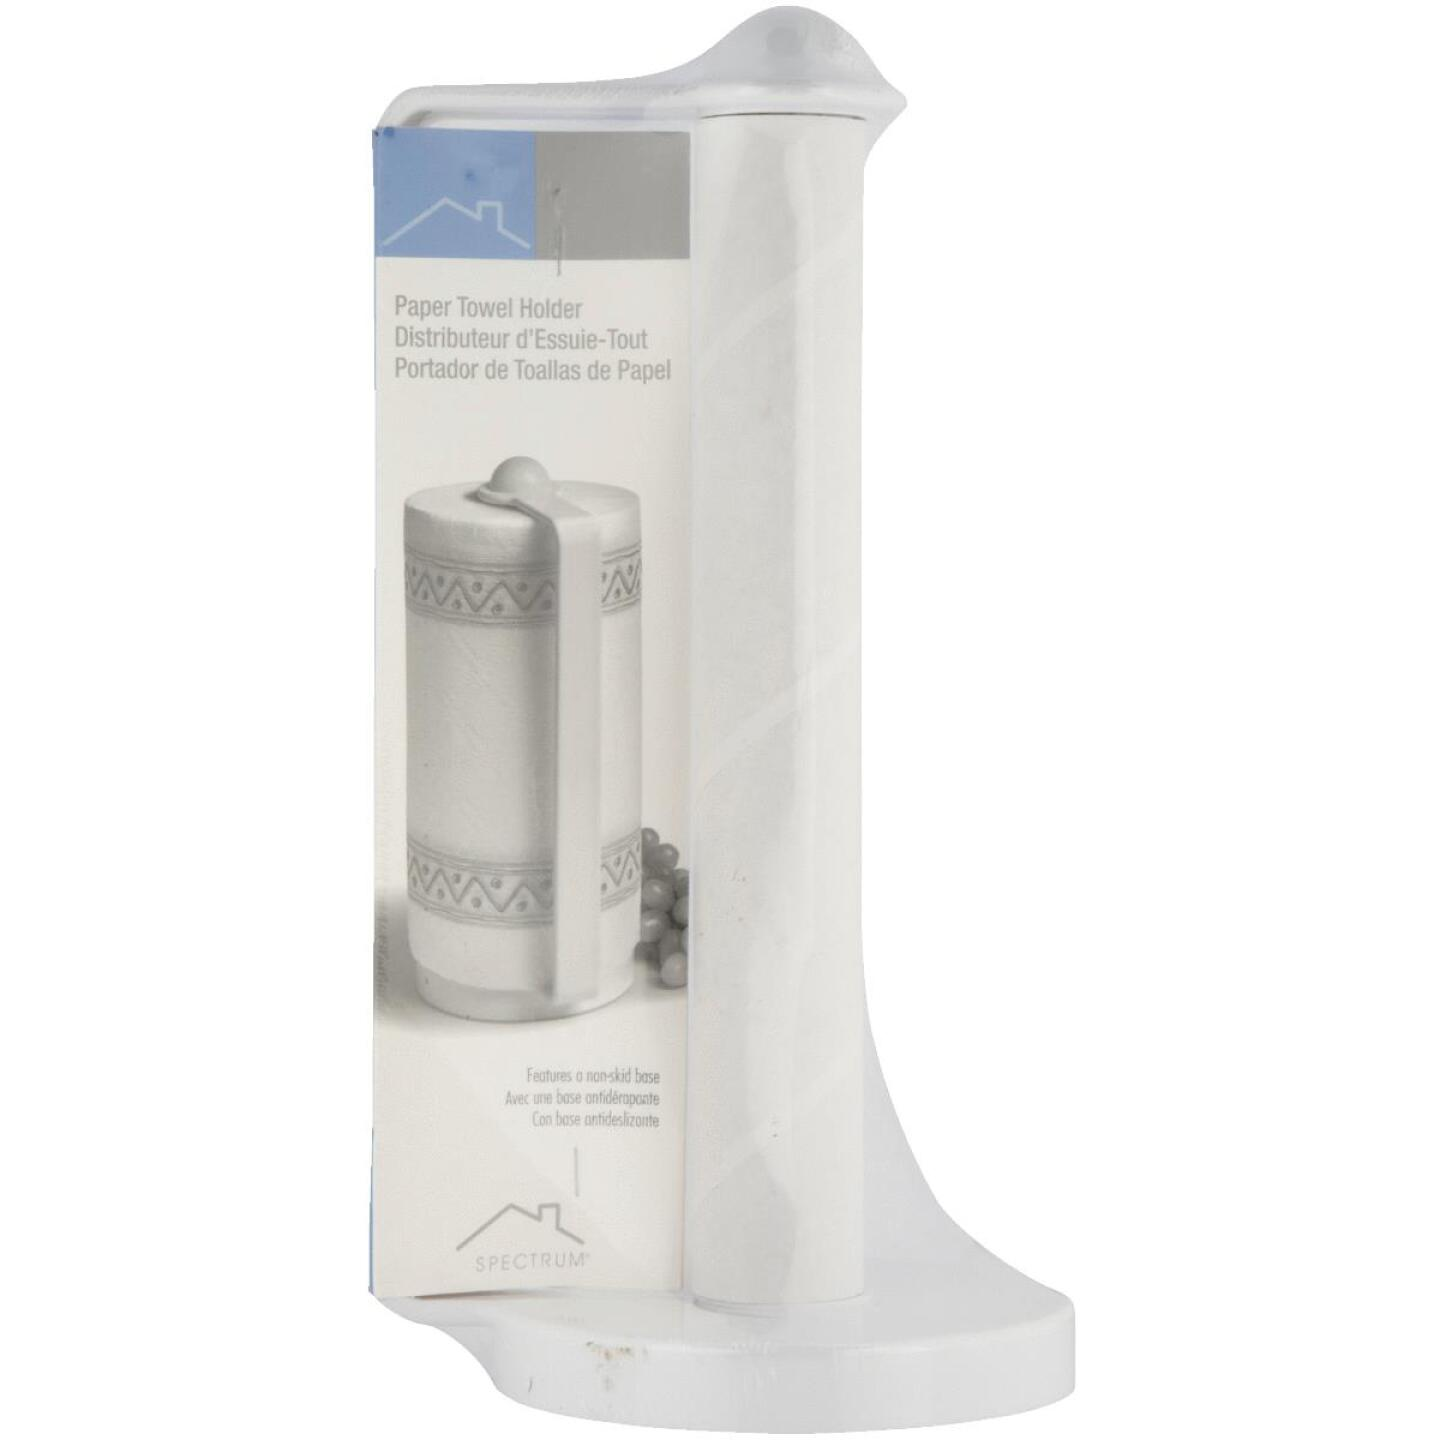 Spectrum White Portable Plastic Paper Towel Holder Image 2